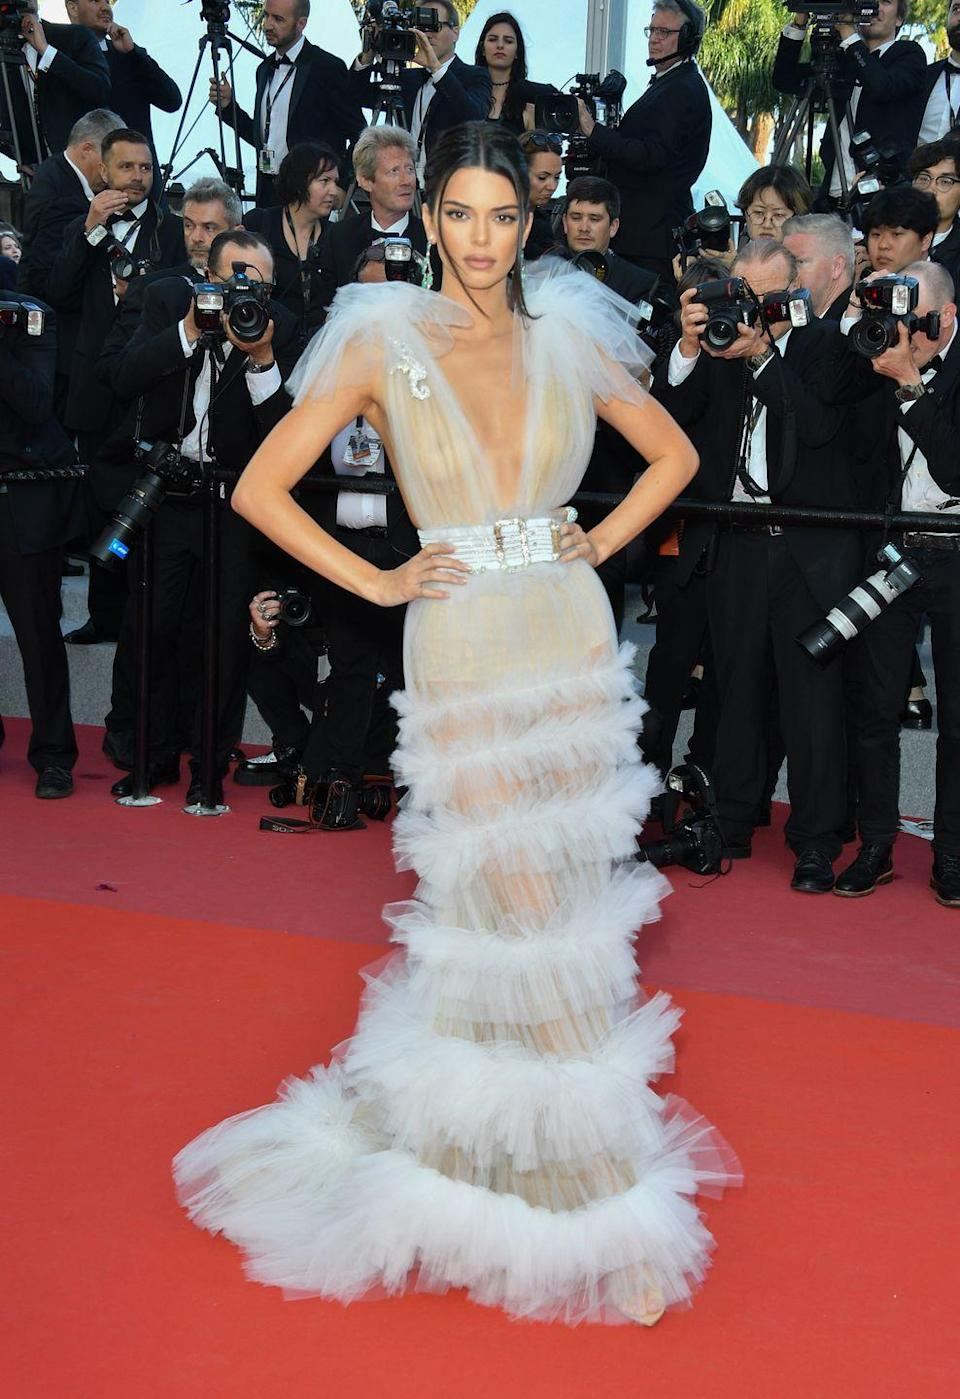 """<p>The star wore a sheer <span class=""""redactor-unlink"""">Schiaparelli Haute Couture</span> dress with exaggerated shoulder detailing on the red carpet at Cannes Film Festival. </p>"""